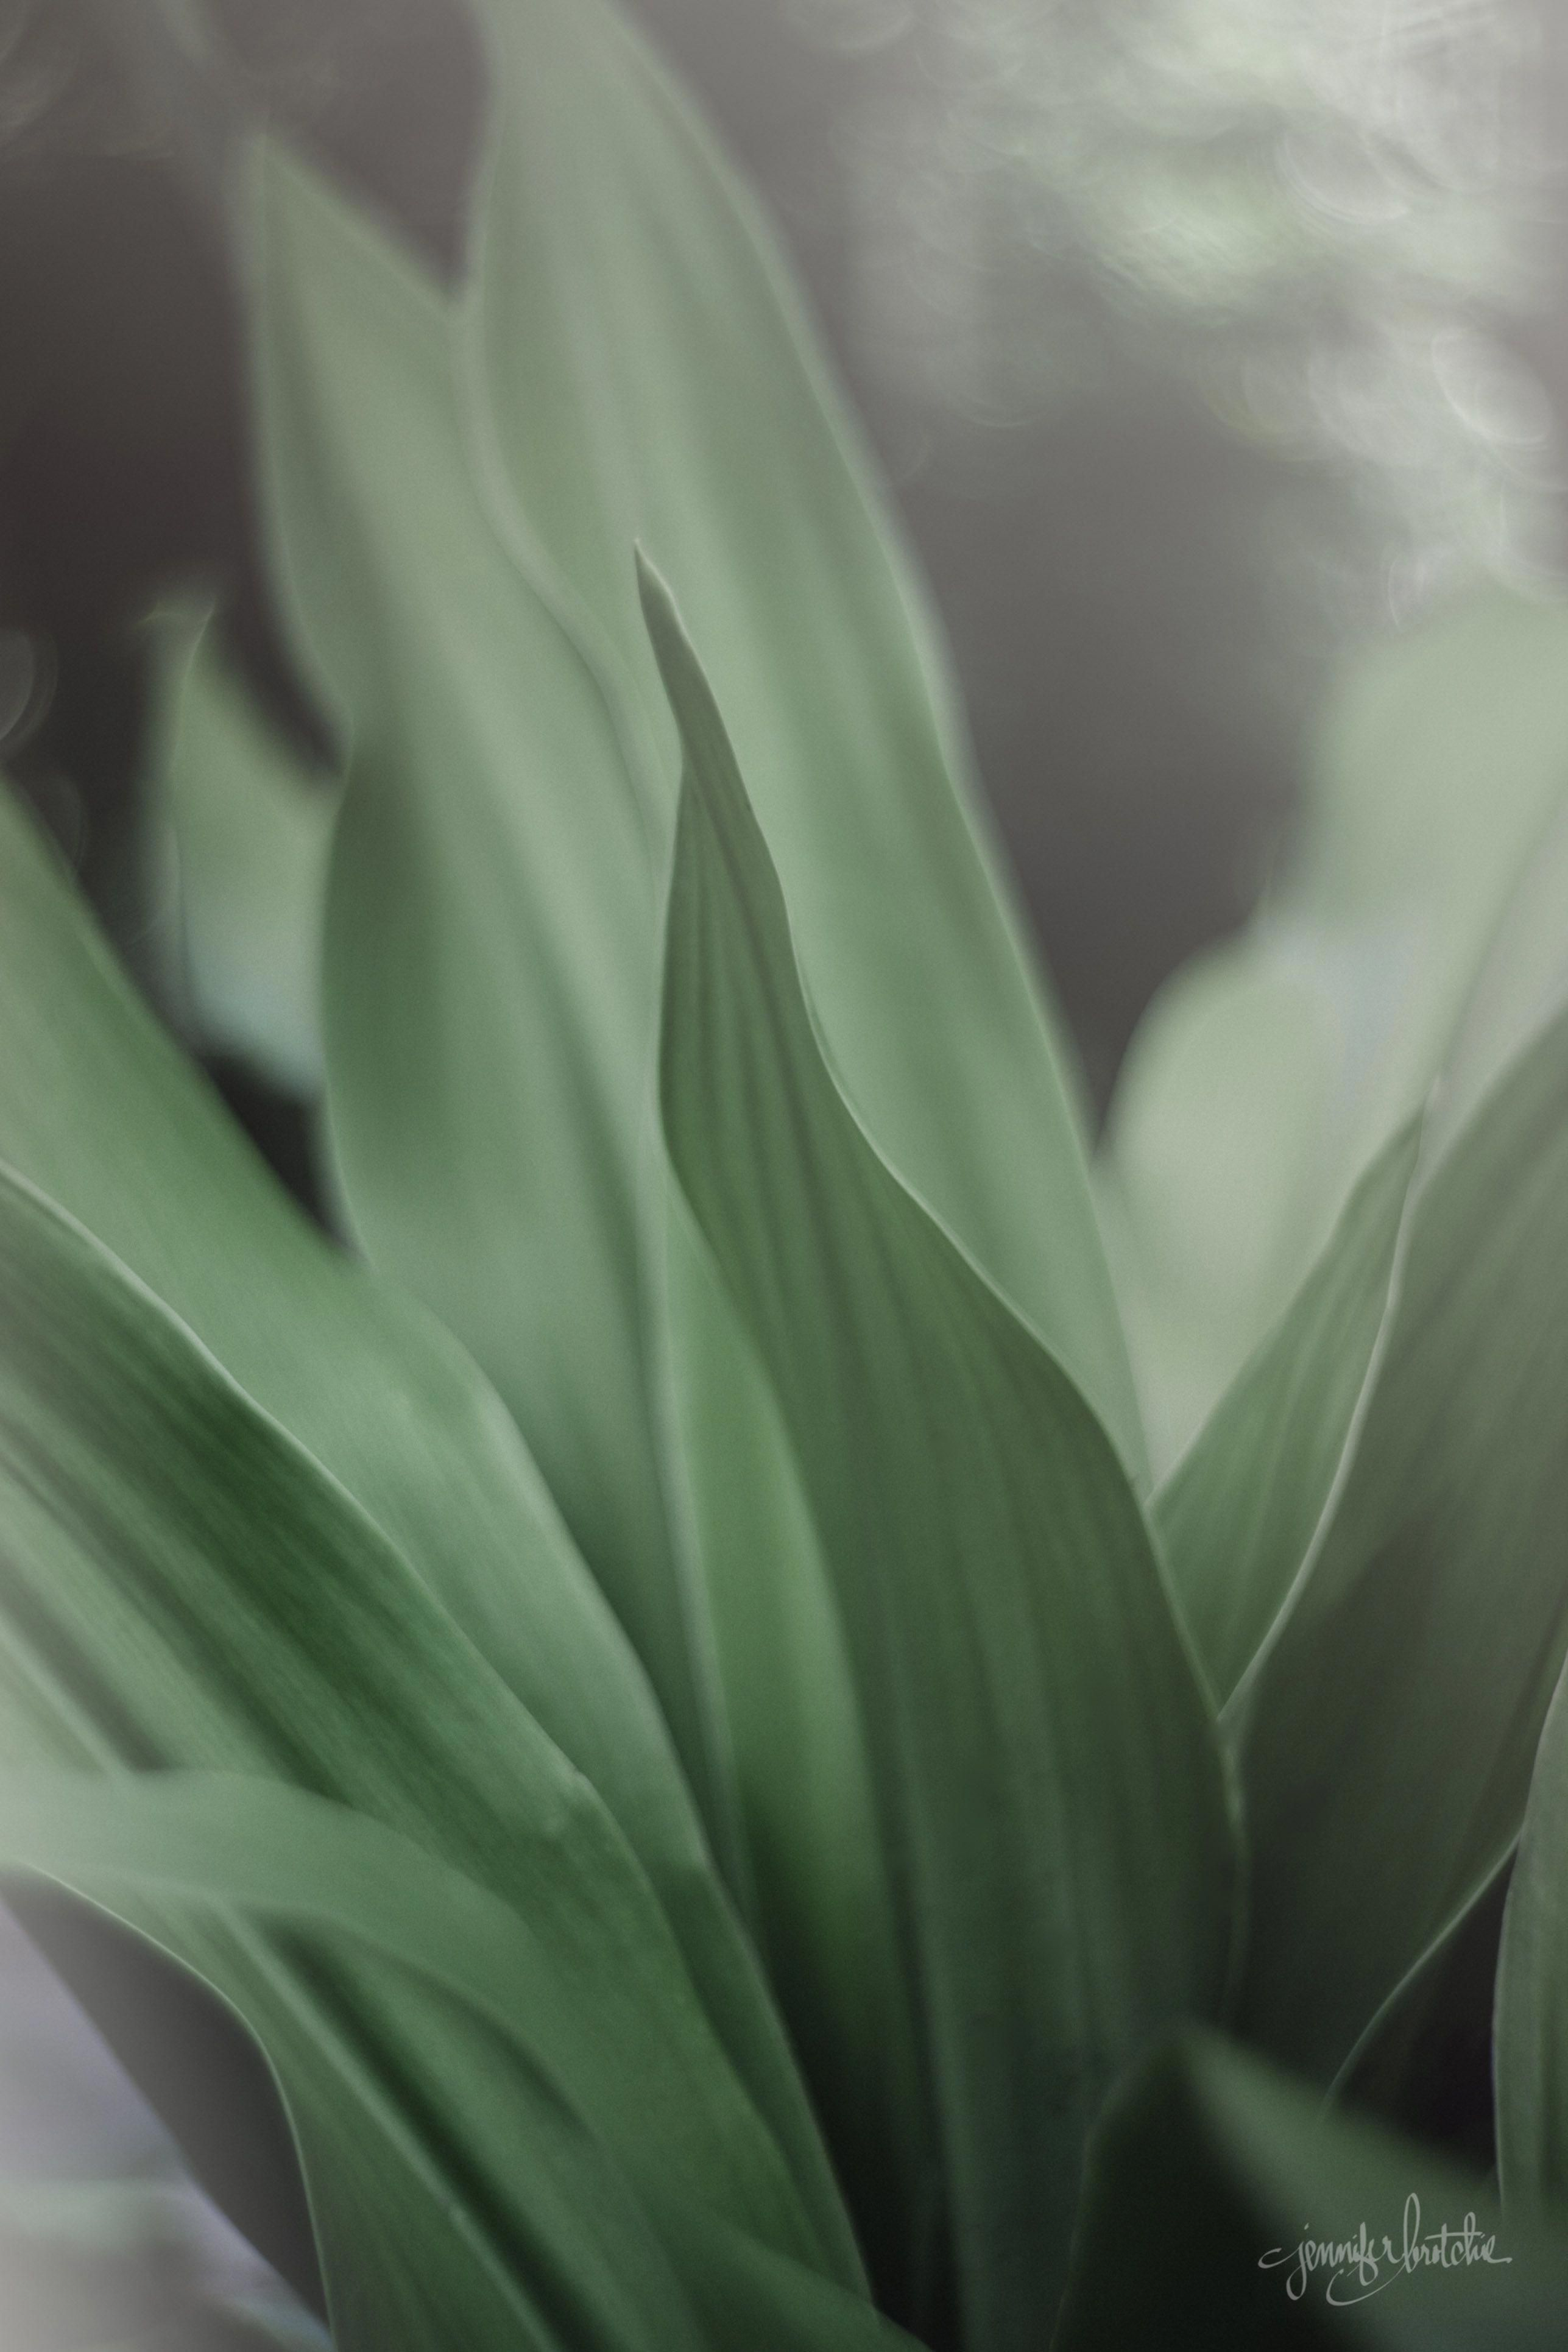 Art Photography That Truly Are Amazing Artphotography Nature Aesthetic Pastel Aesthetic Plant Aesthetic